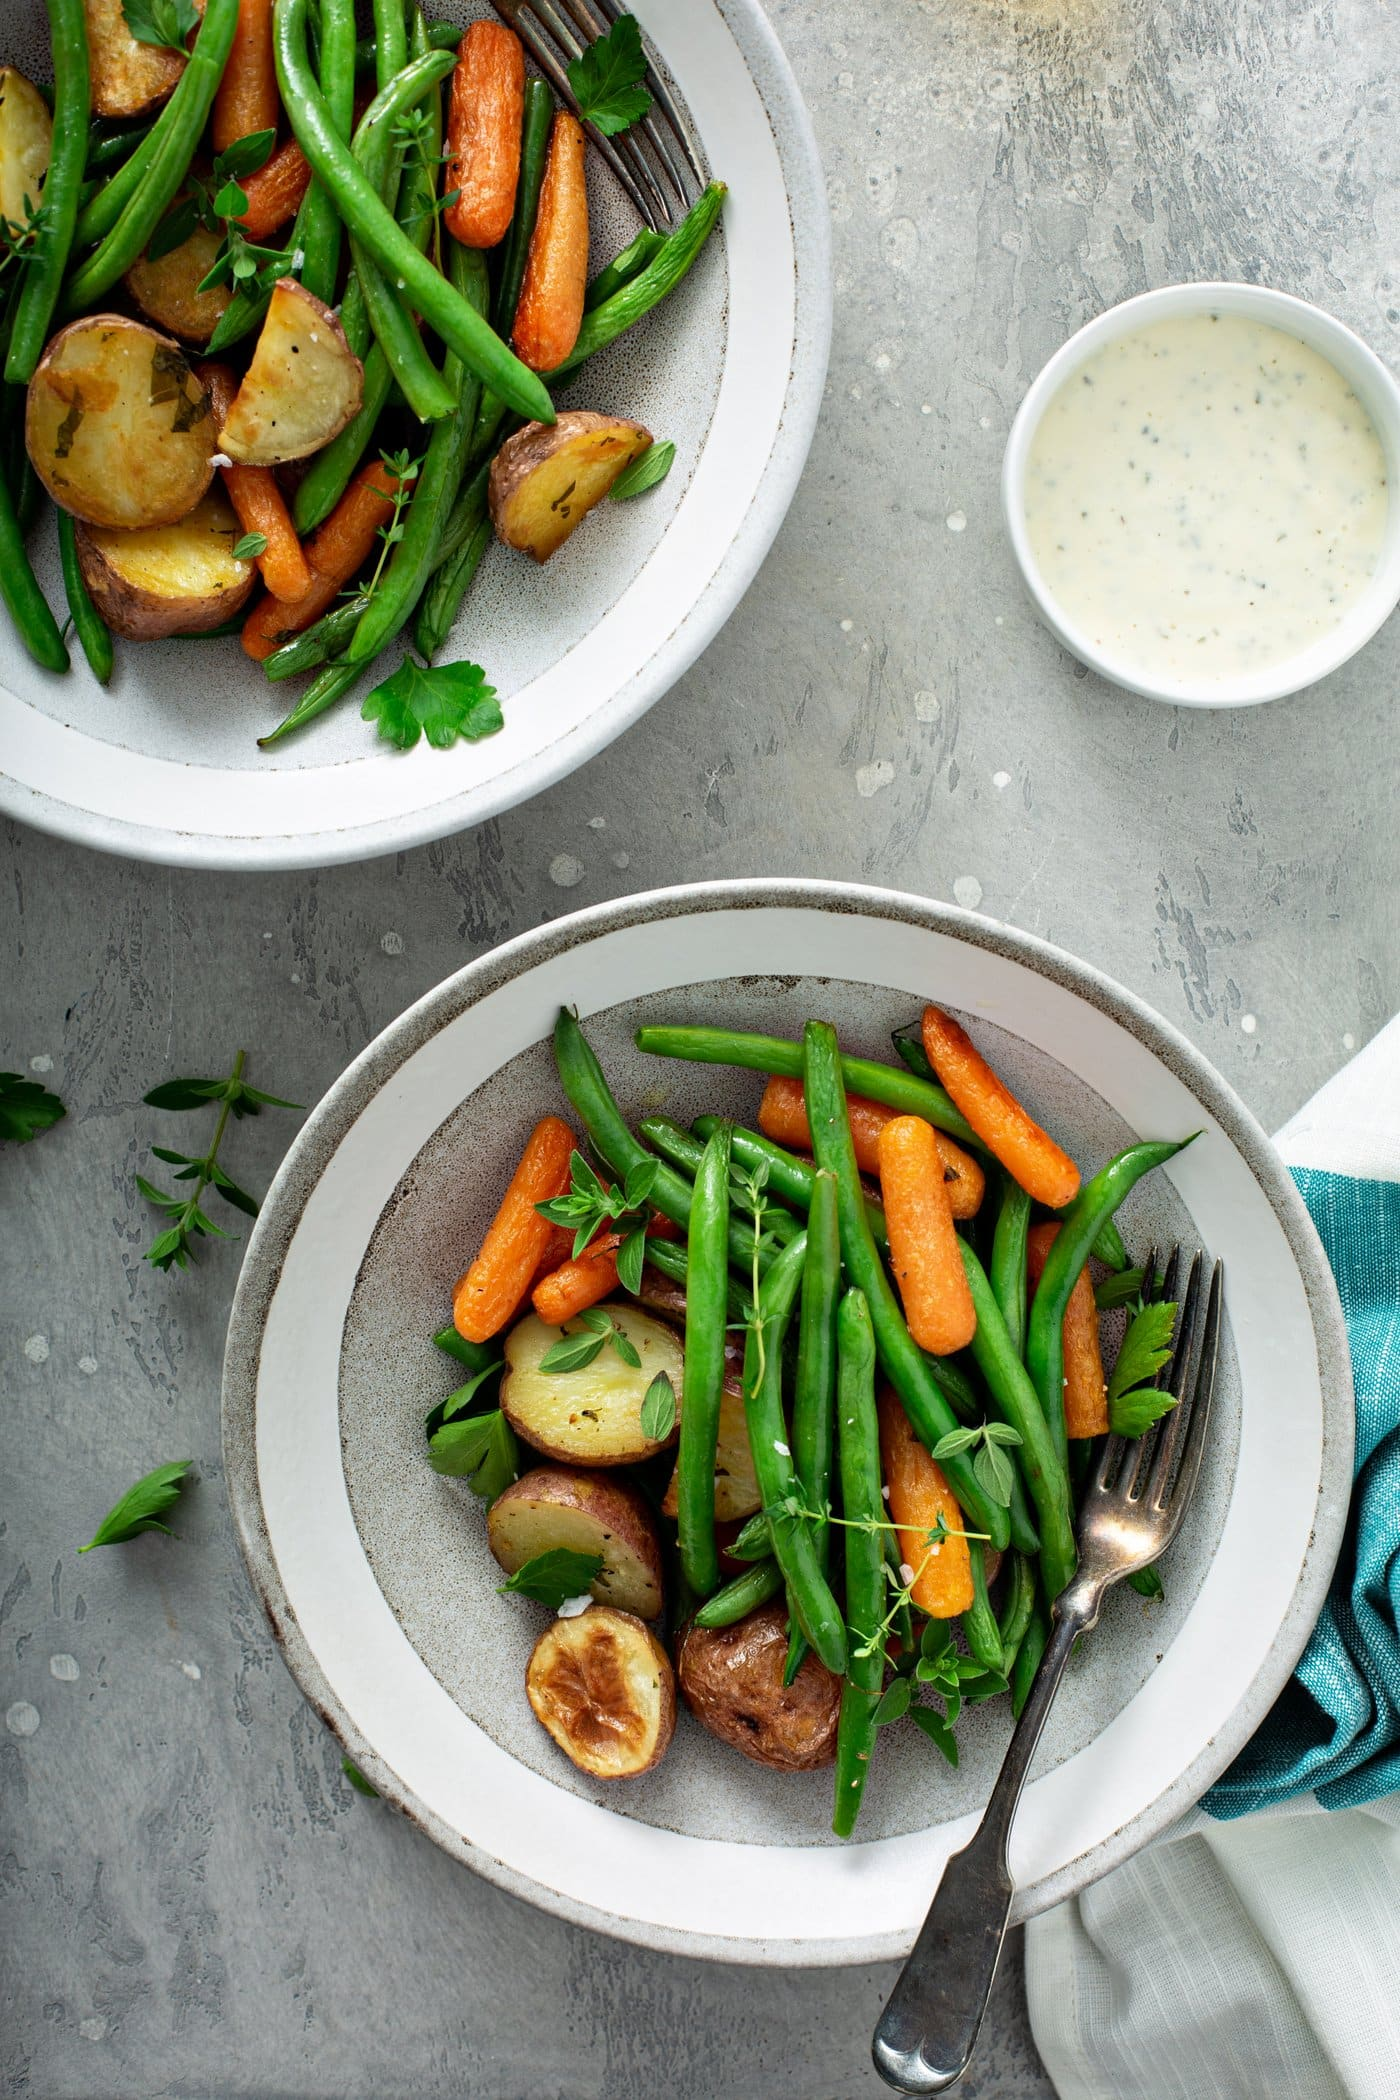 Two dinner plates filled with garlic herb roasted potatoes, carrots and green beans. Fresh parsley and thyme are sprinkled on top and on the table. A napkin is next to one plate, and a small bowl of salt is in the right corner.